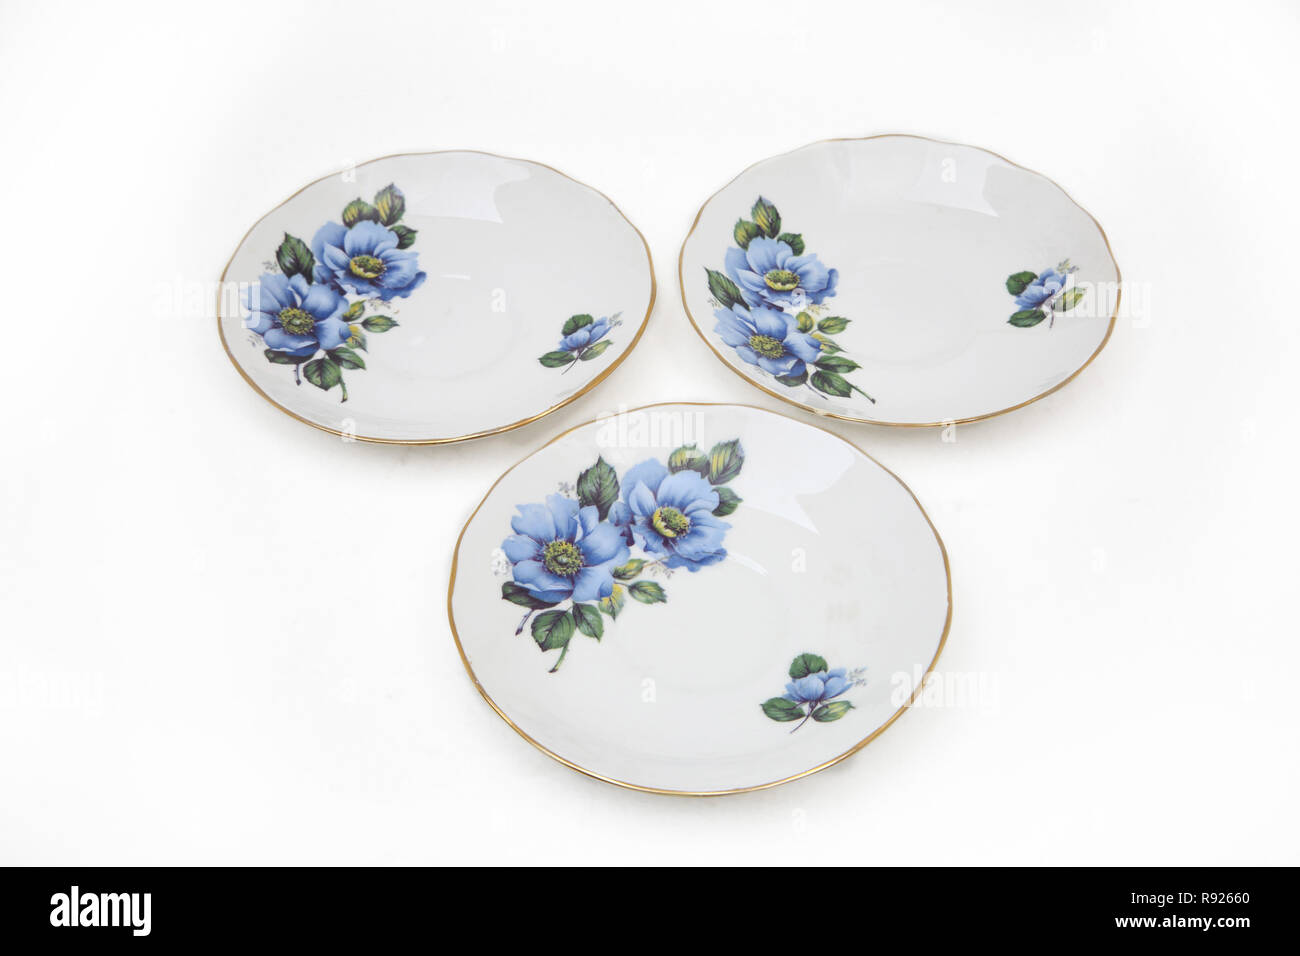 Gainsborough Bone China Saucers With Floral Design - Stock Image